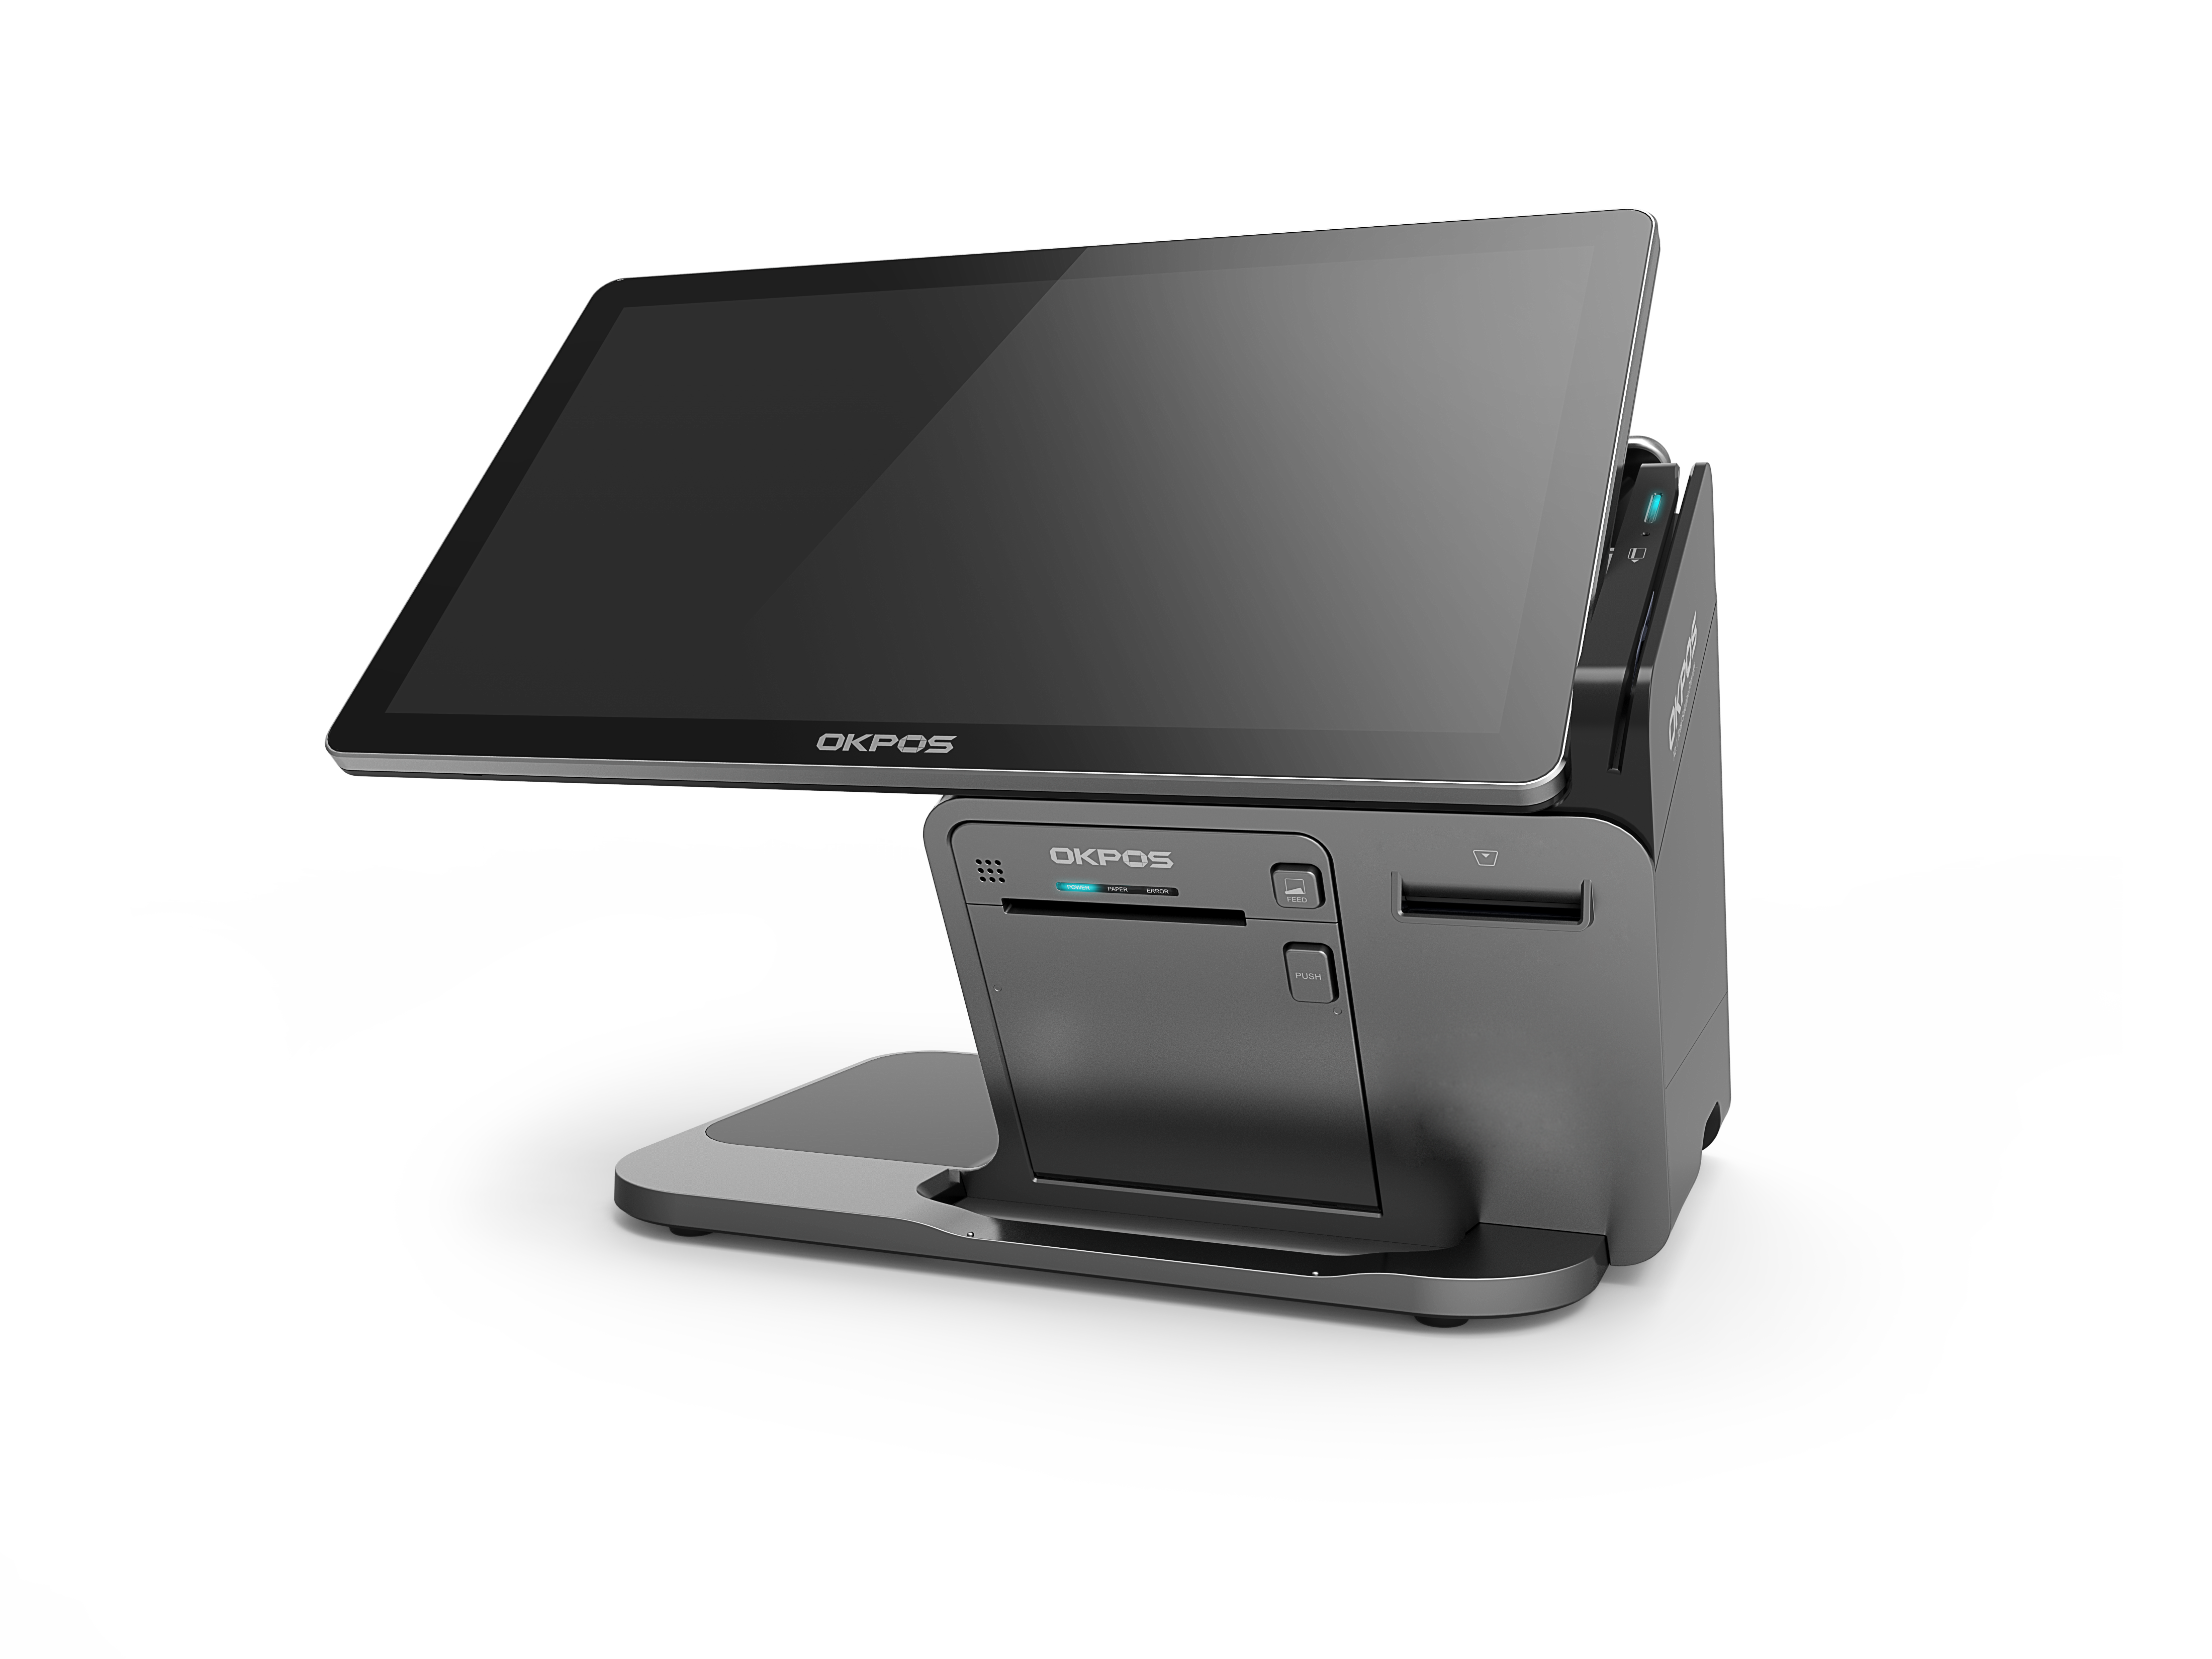 Pin by 熊庆弟 on 收银系统 Electronic products, Computer monitor